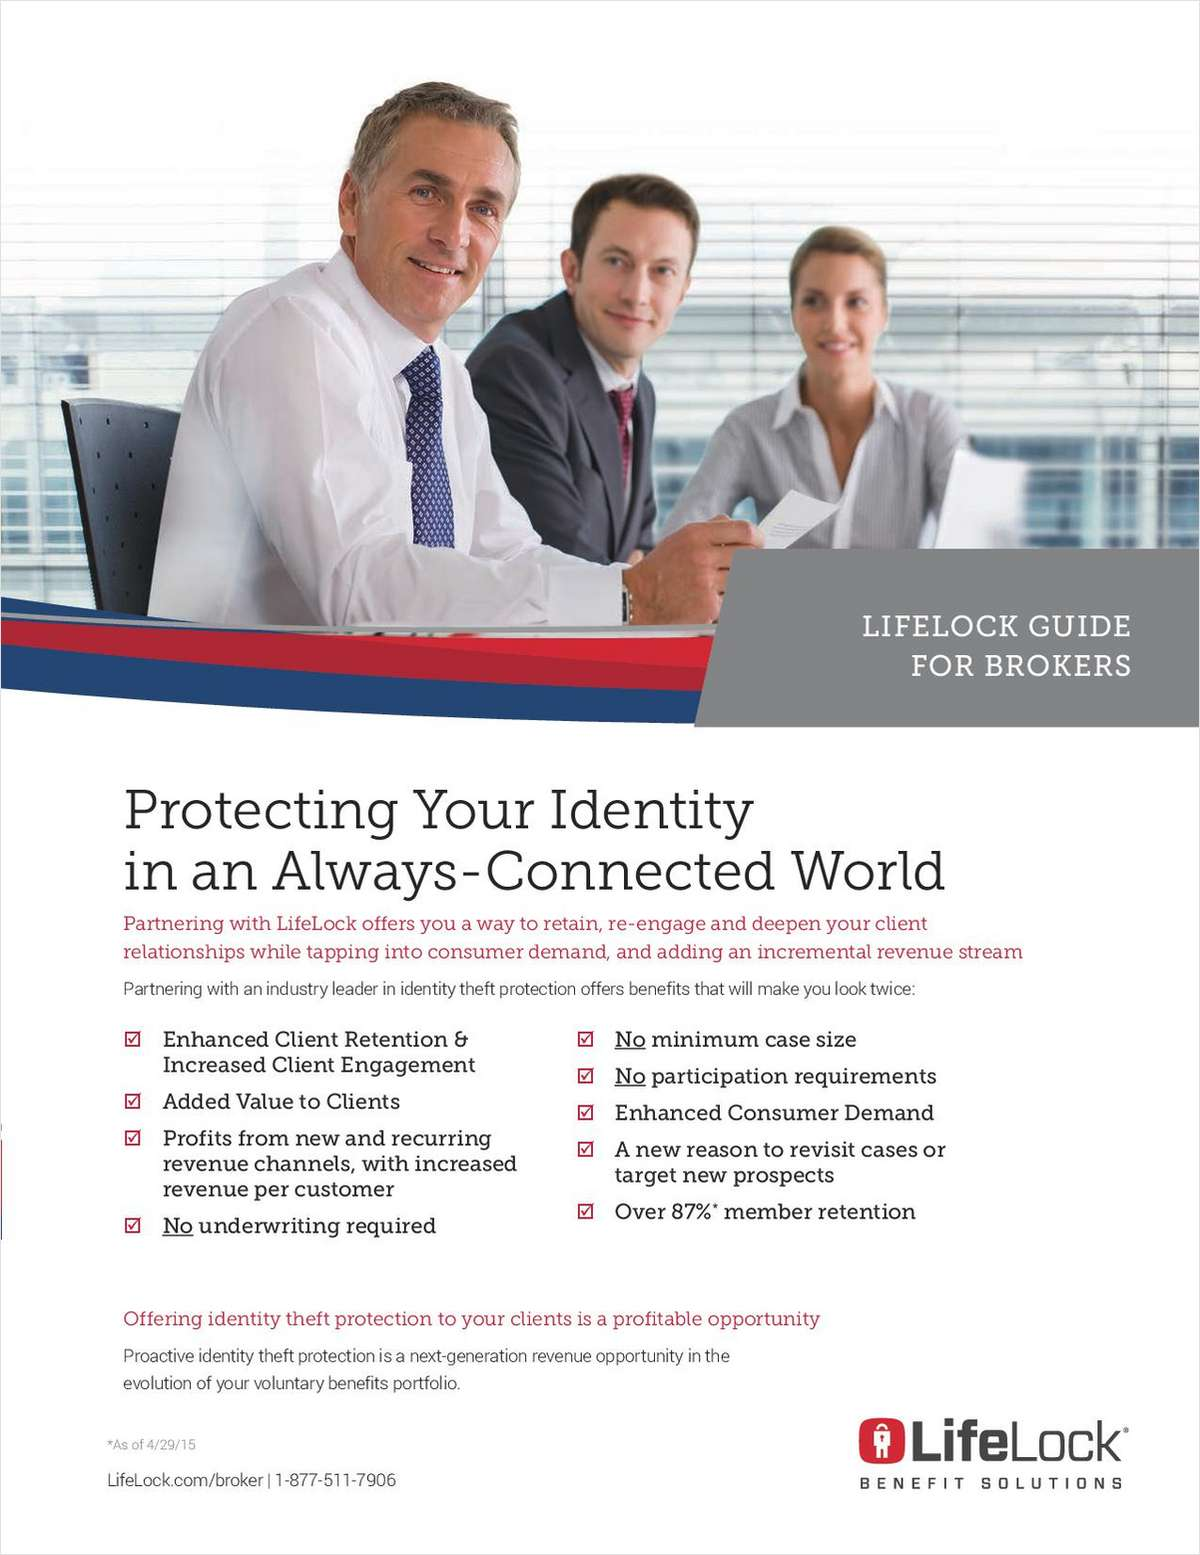 Protecting Your Identity in an Always Connected World